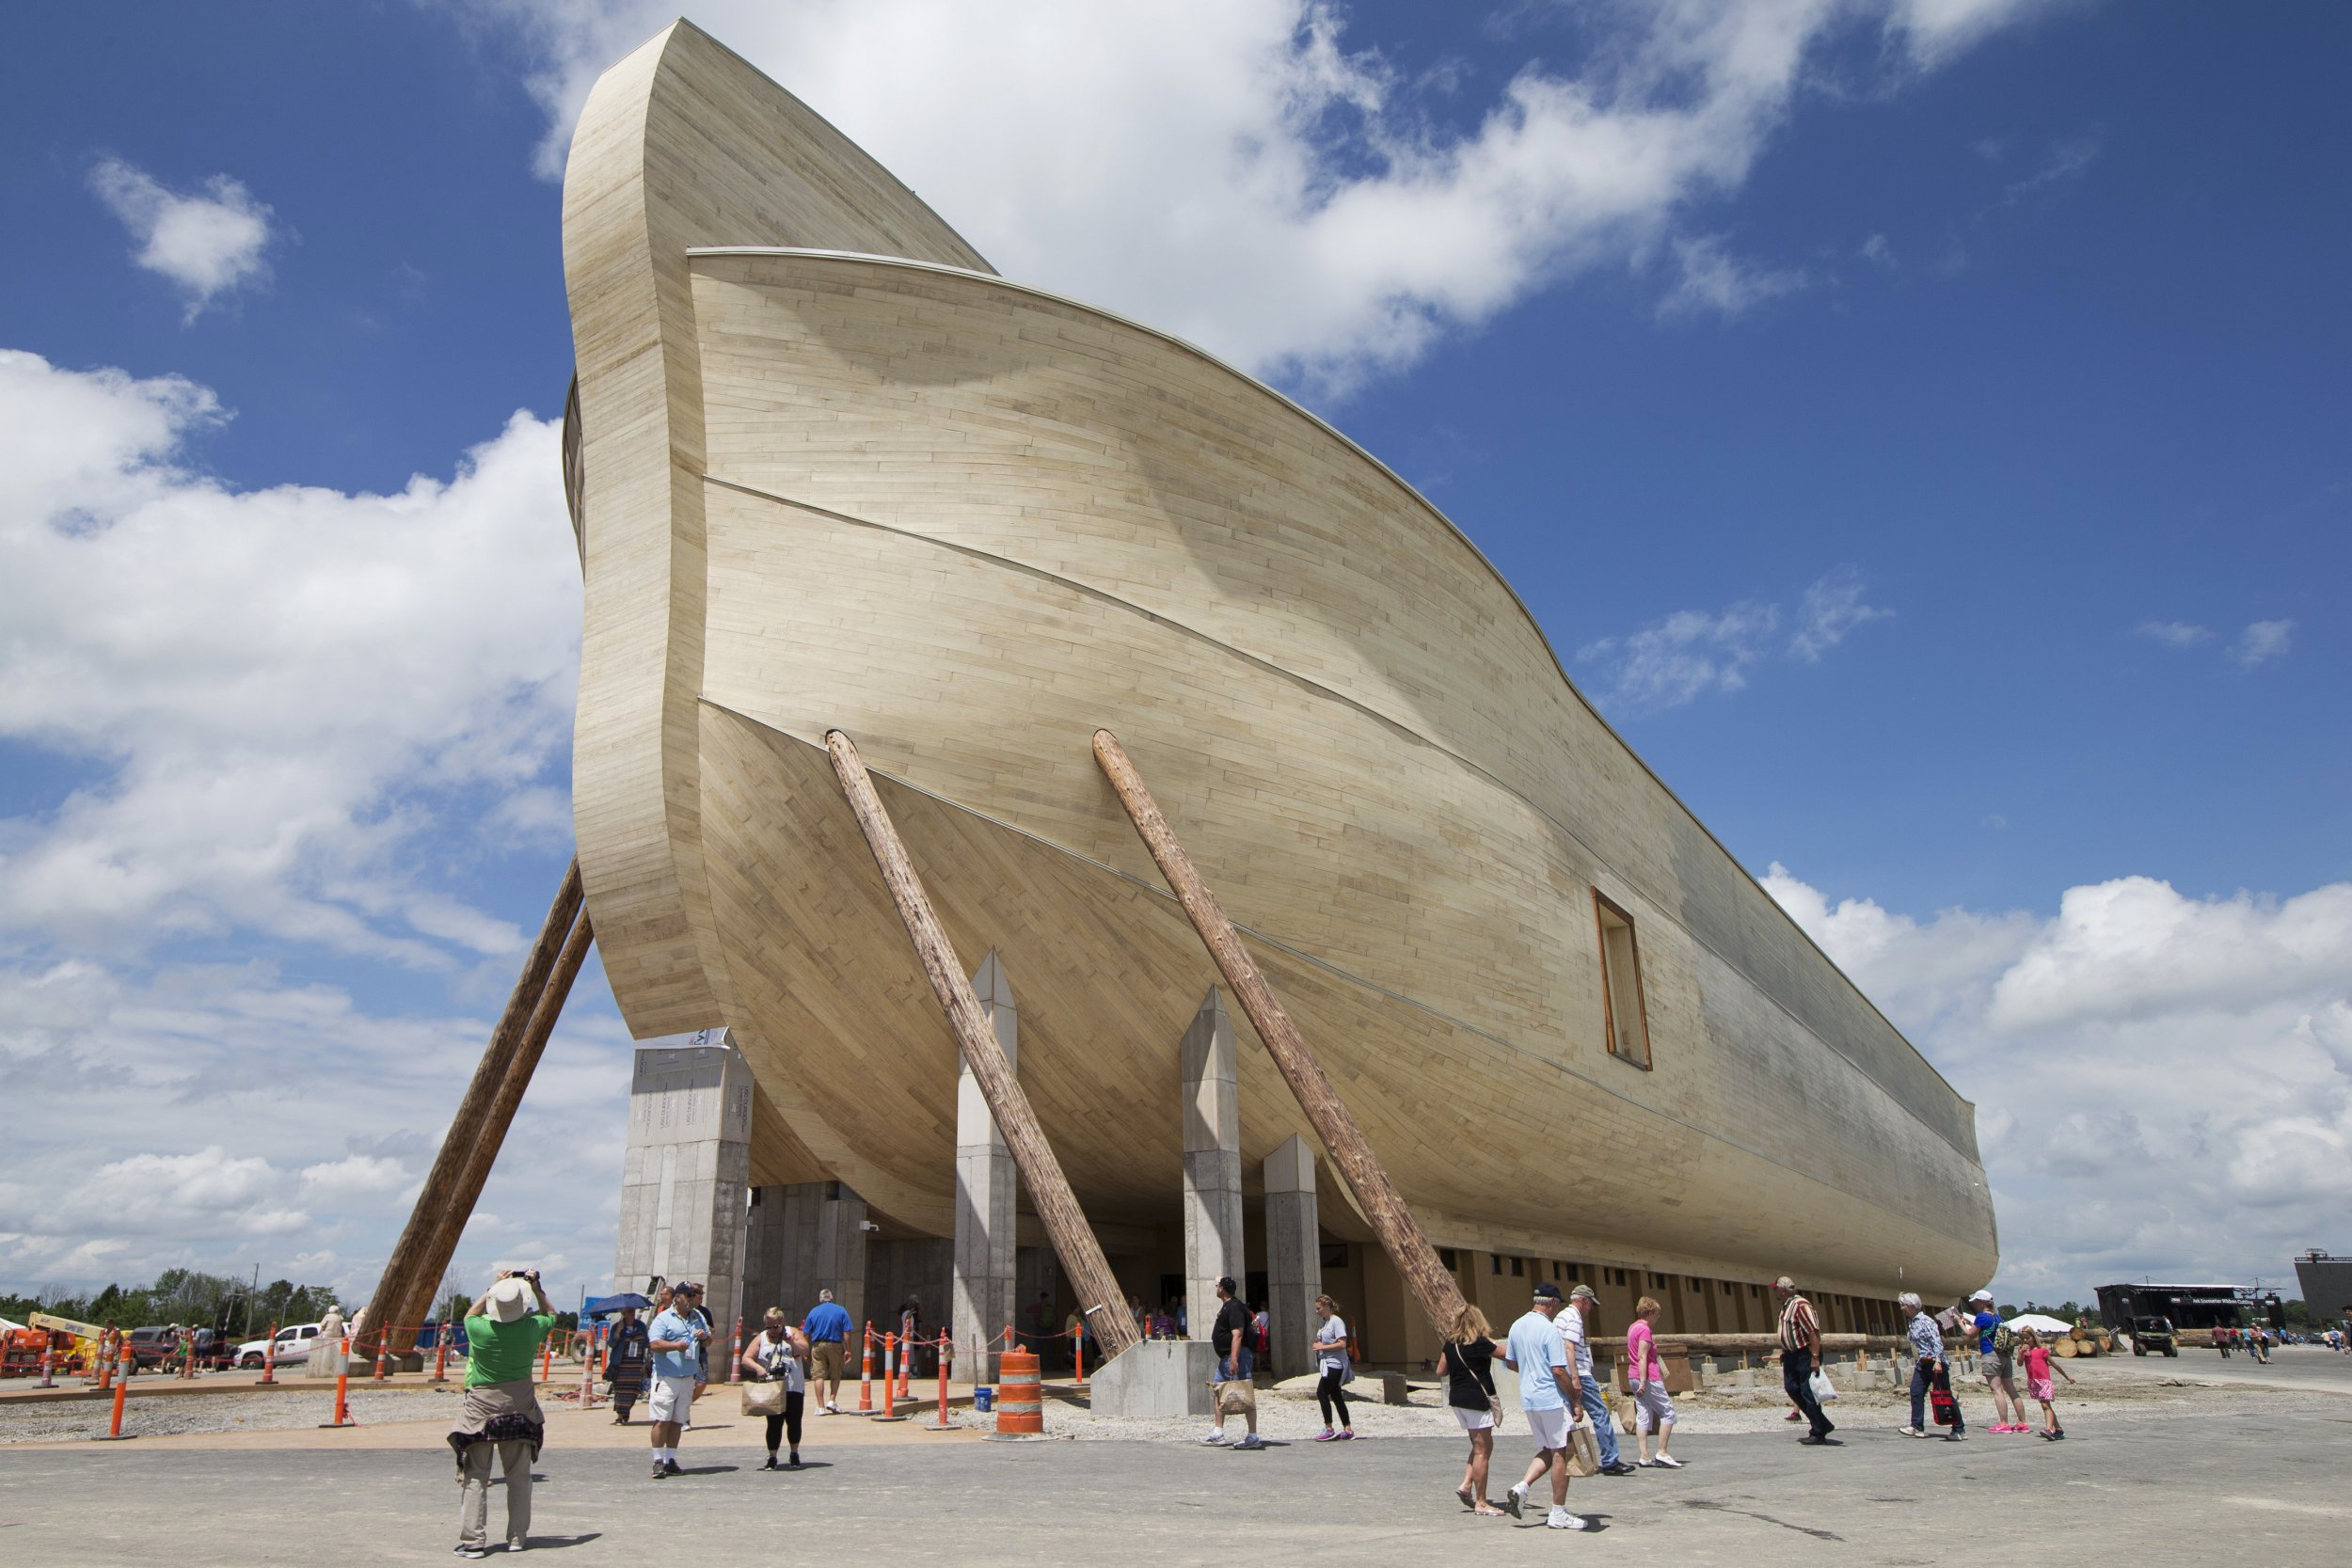 Owners of 'life-size' Noah's Ark to sue insurer for not covering flood damage